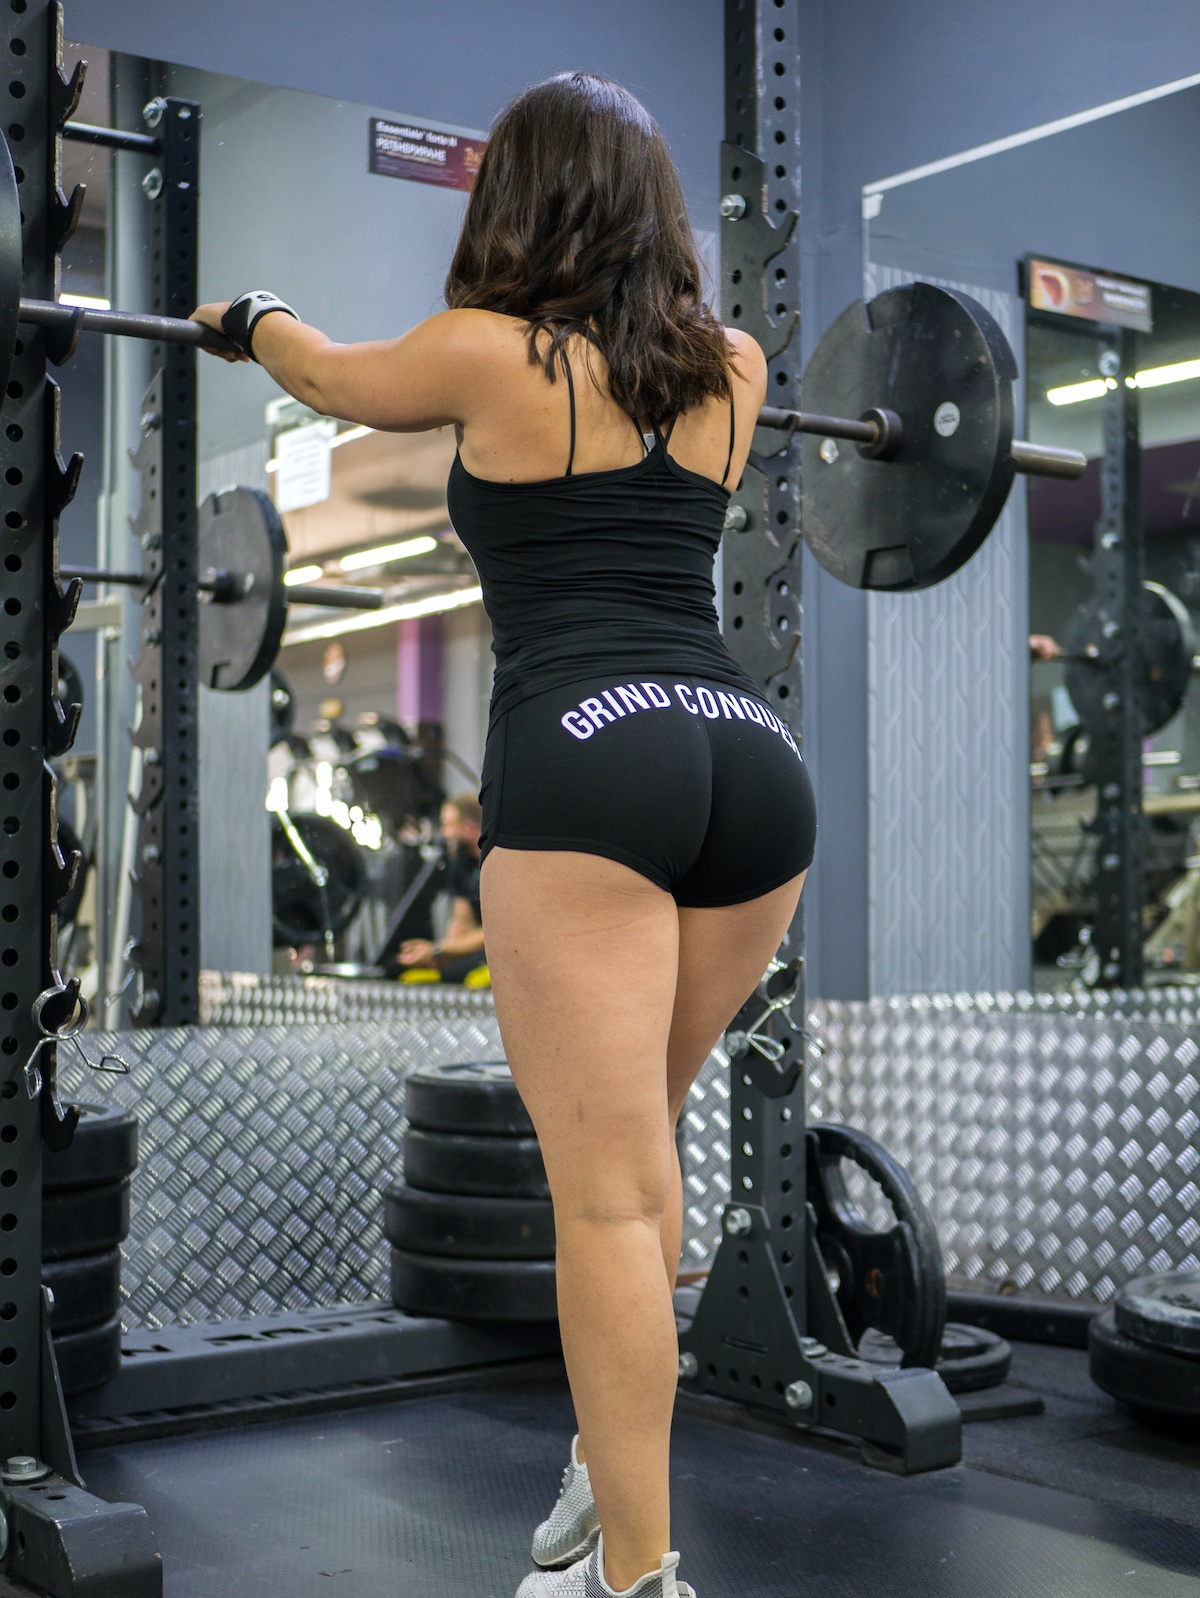 grind conquer shorts